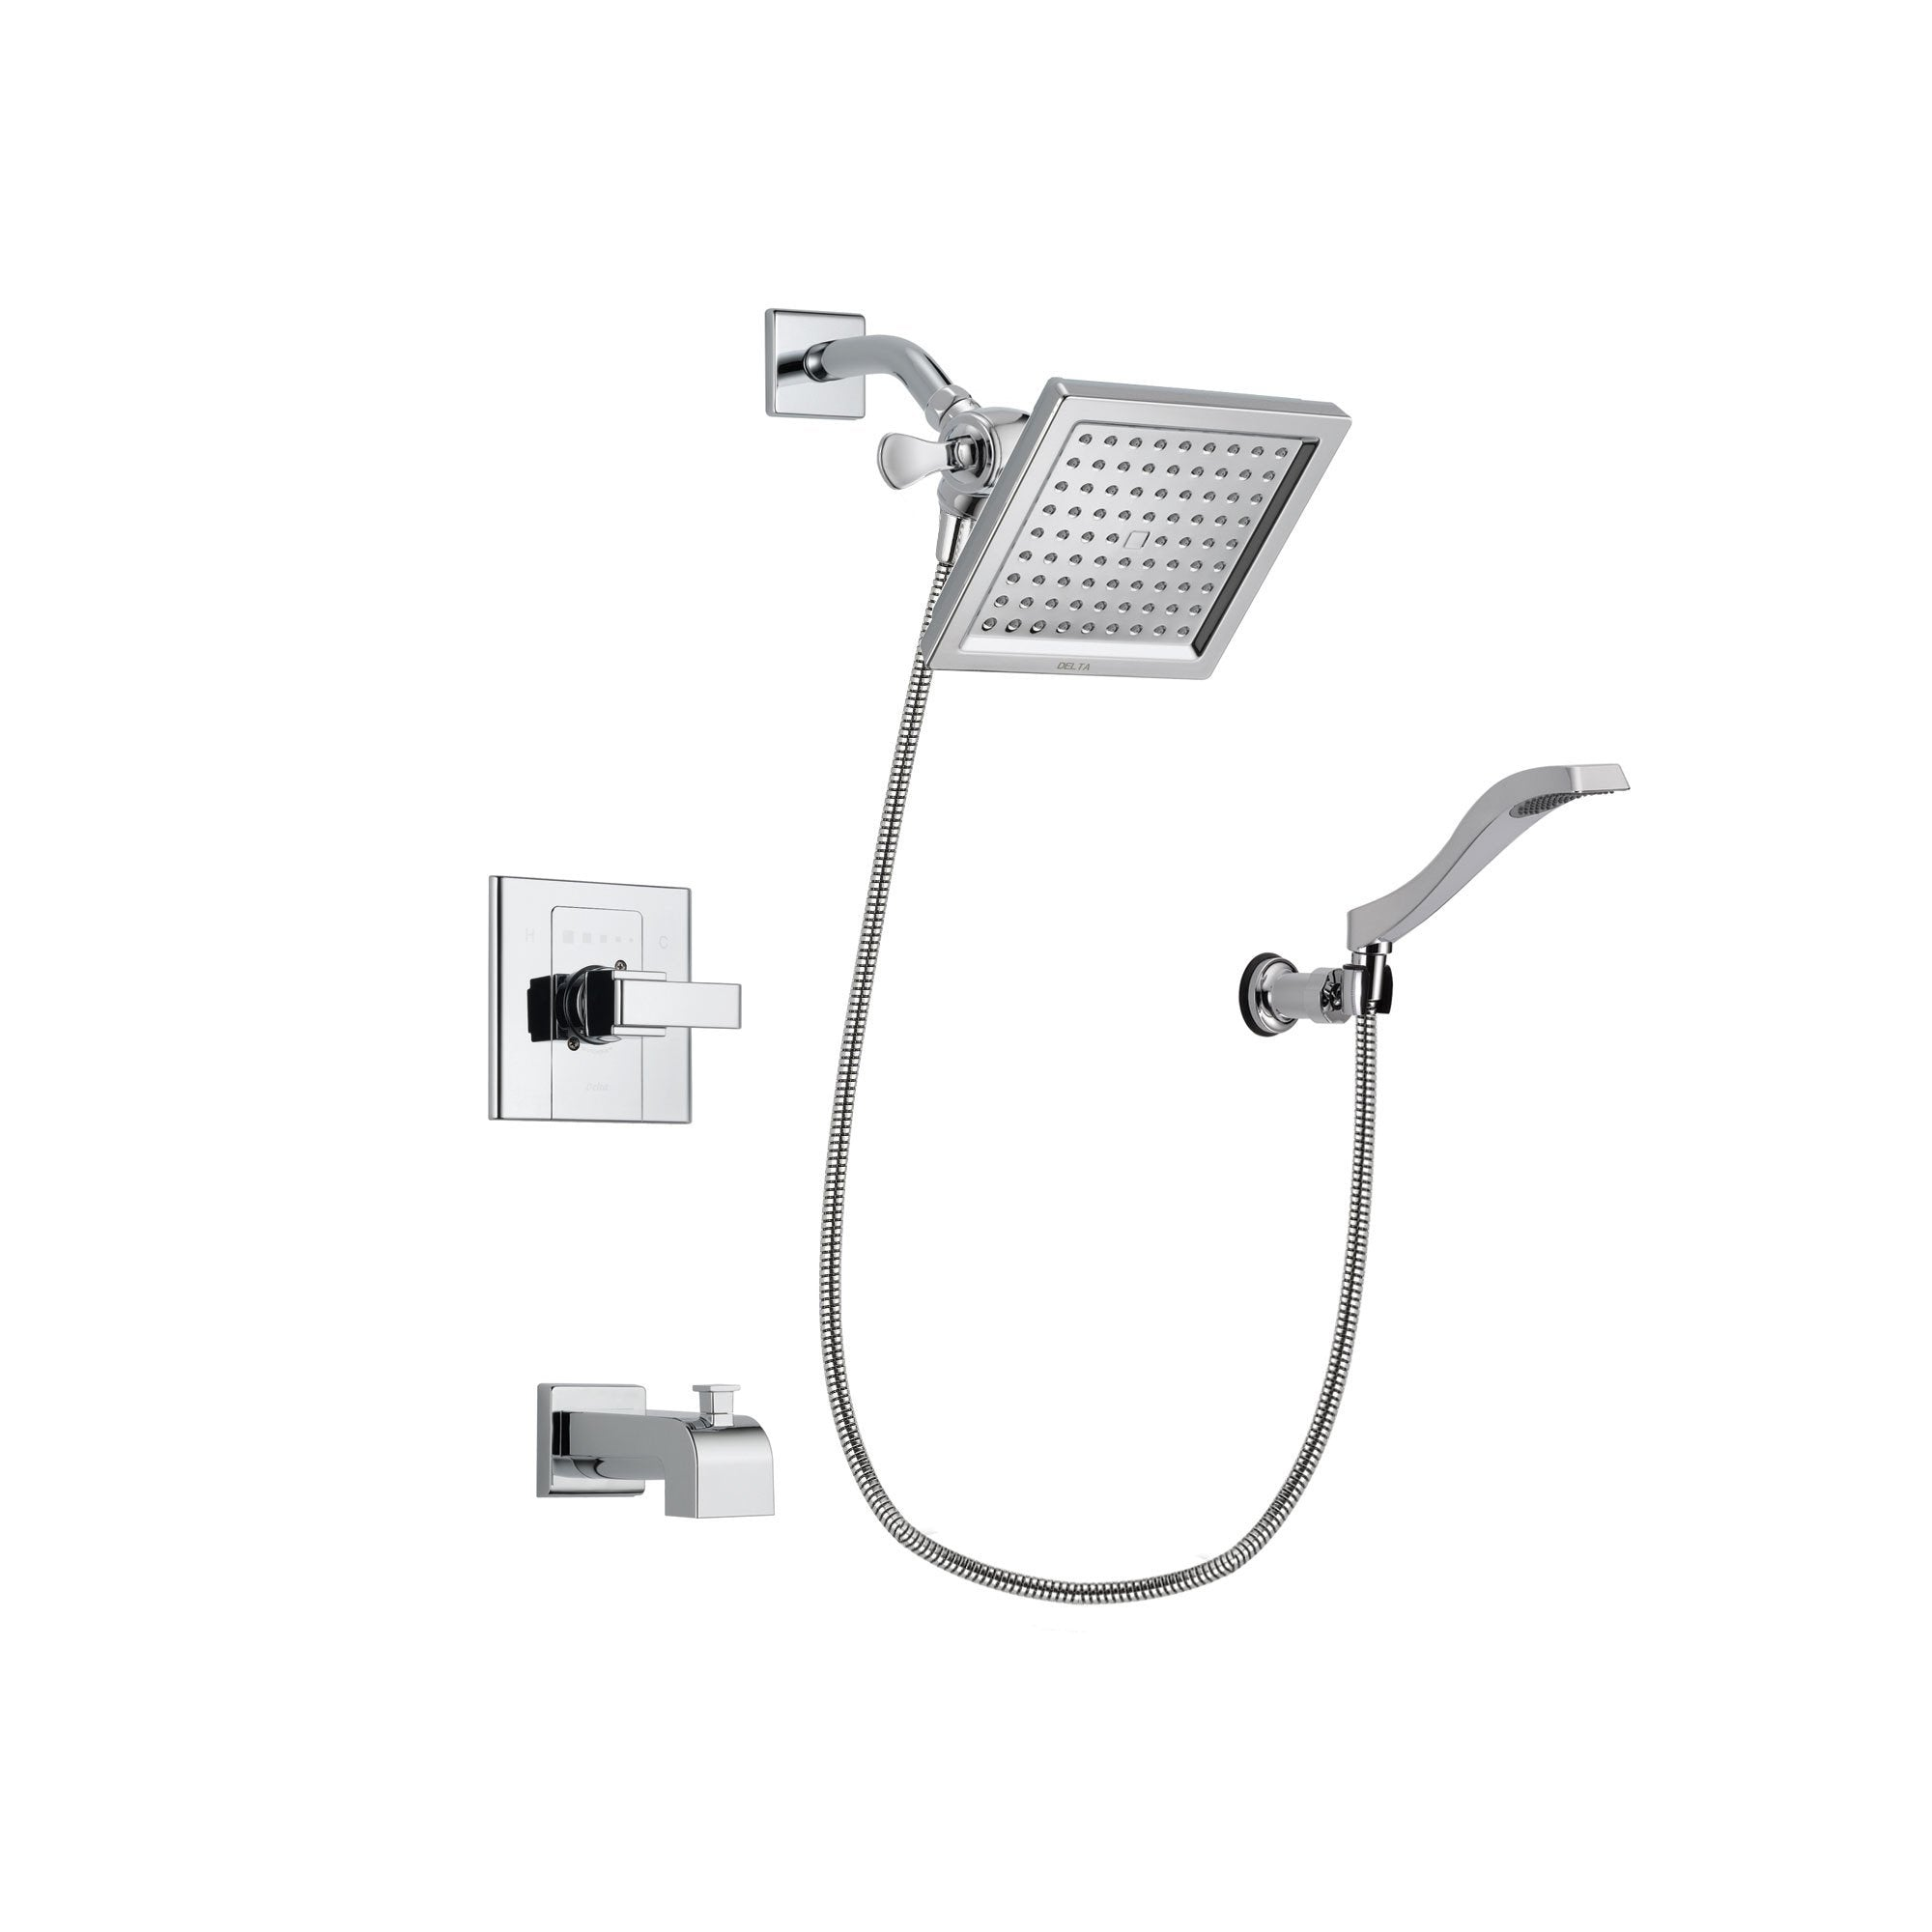 Delta Arzo Chrome Finish Tub and Shower Faucet System Package with 6.5-inch Square Rain Showerhead and Modern Handheld Shower Spray with Wall Bracket and Hose Includes Rough-in Valve and Tub Spout DSP0027V